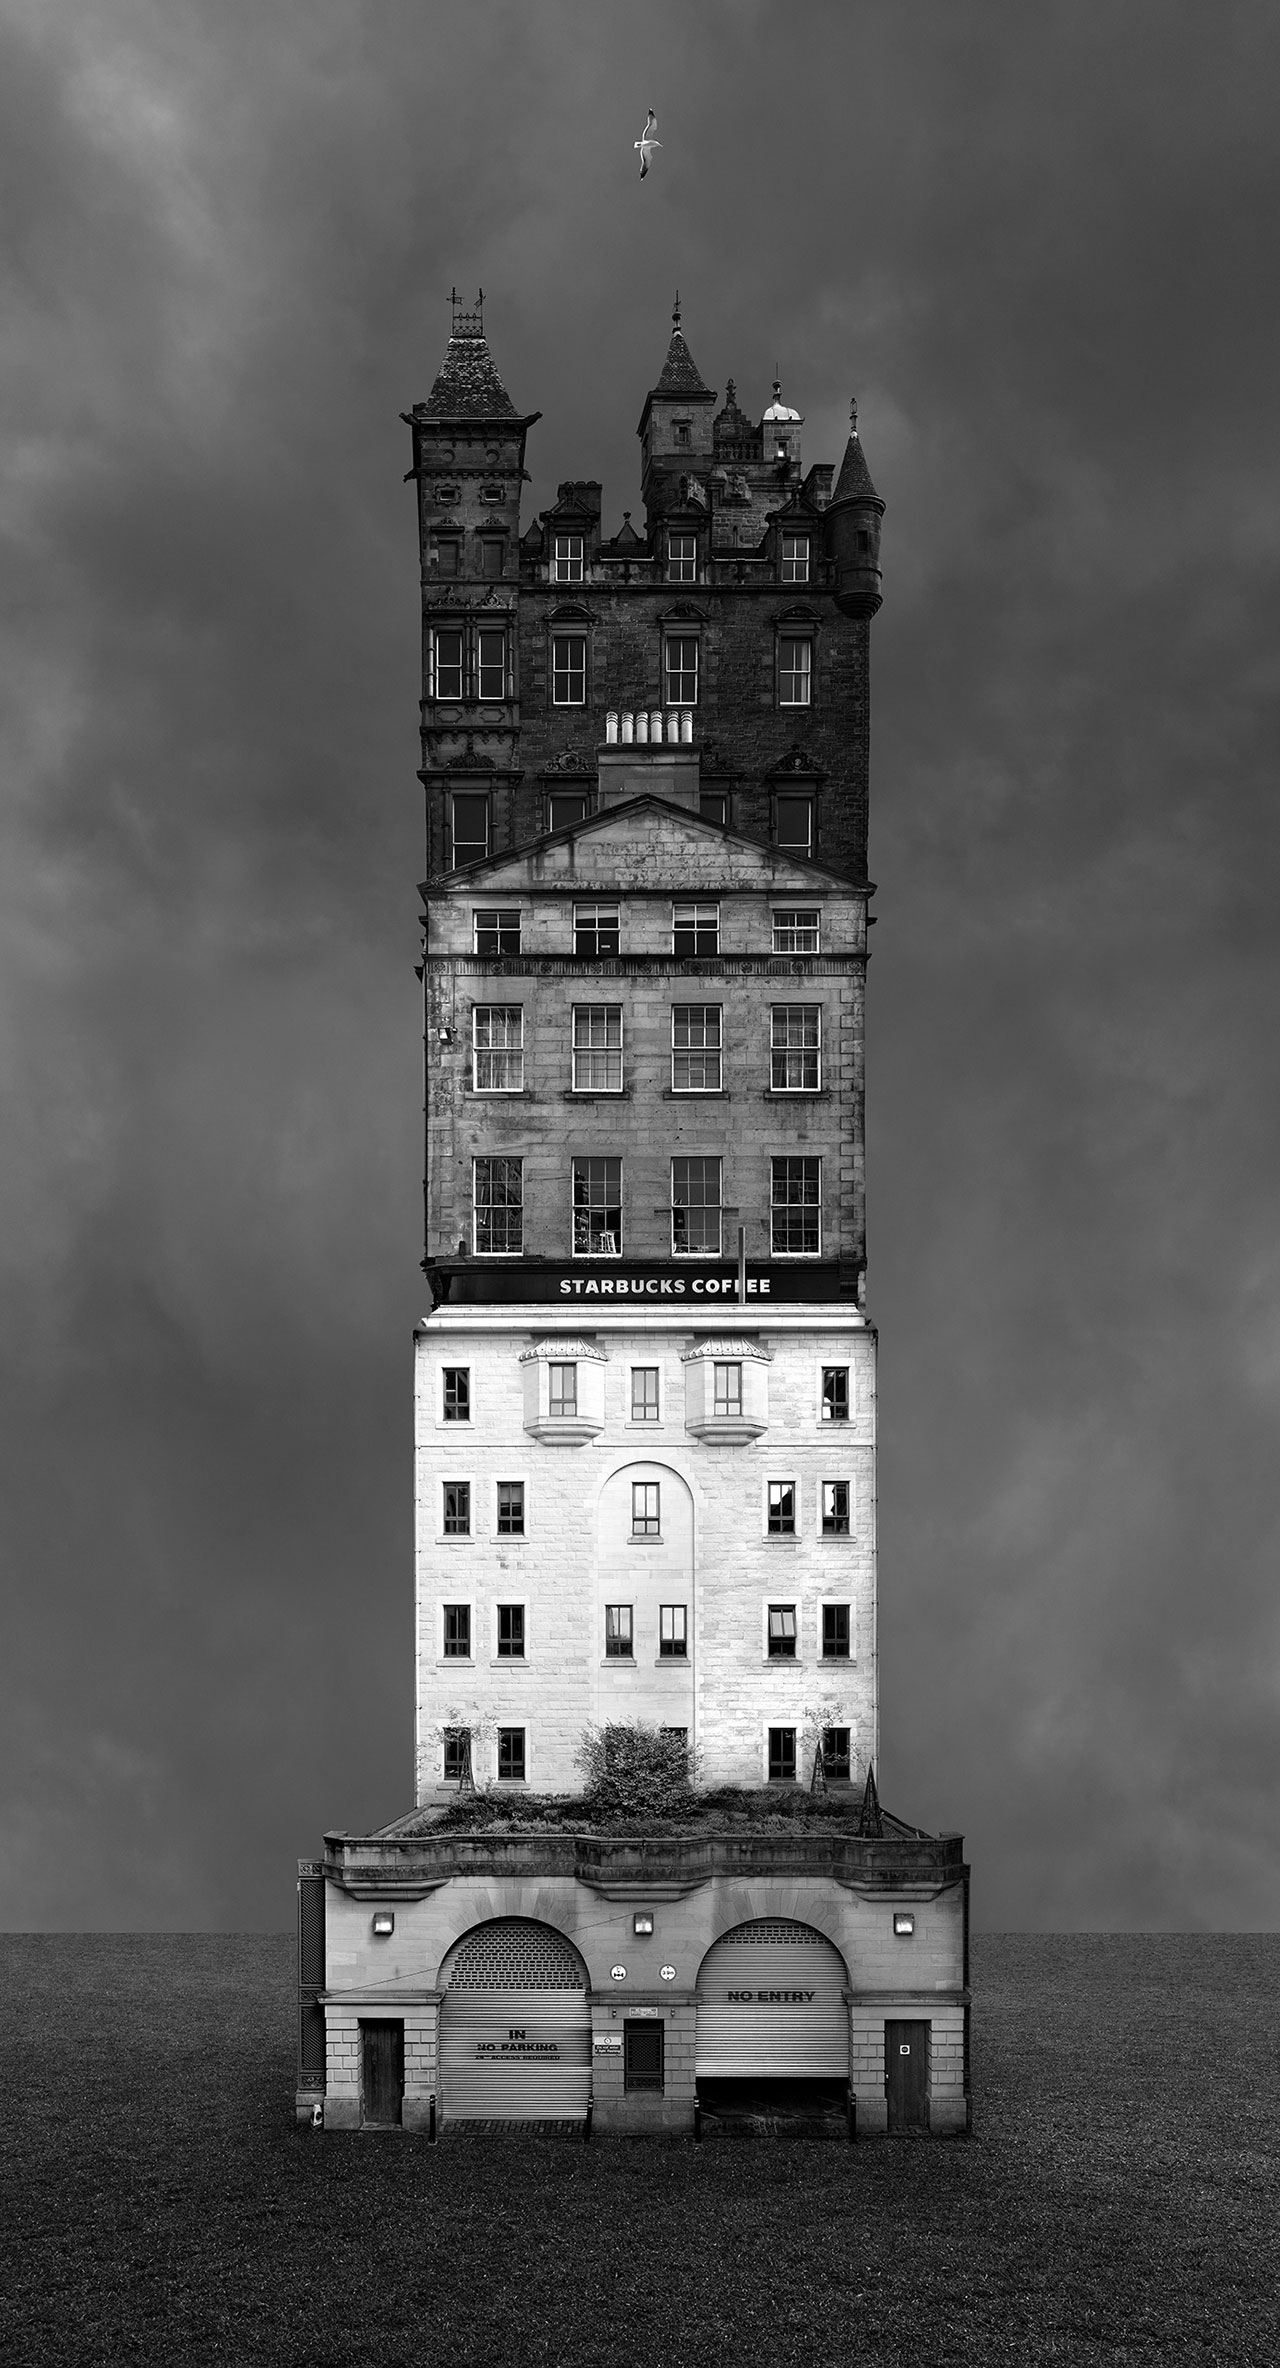 Beomsik Won,Archisculpture 014, 2013. Archival pigment print, 46x25 or 135x73cm.